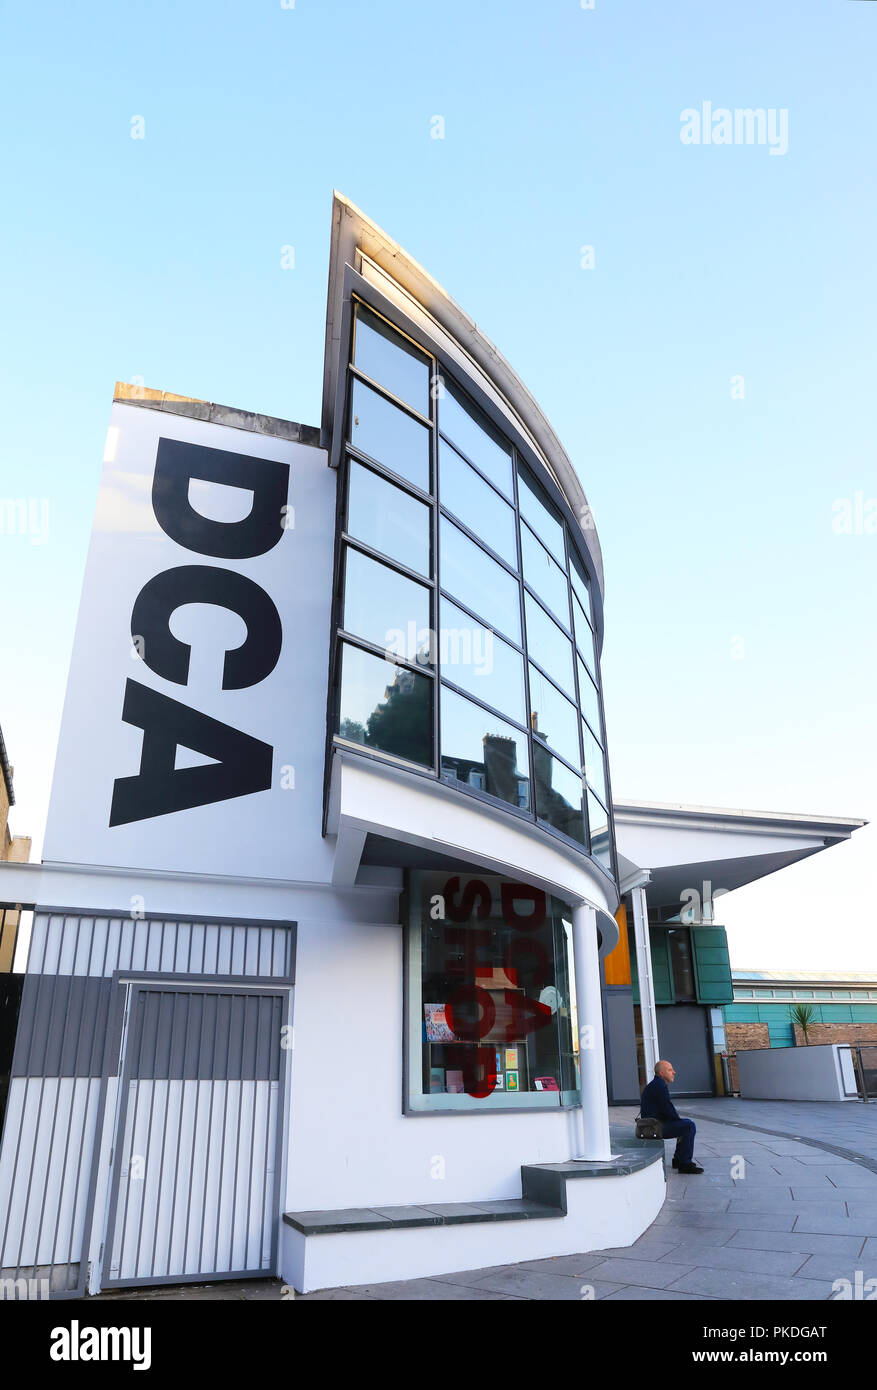 Popular Dundee Contemporary Arts centre with art galleries, a cinema and the Jute cafe, in Nethergate, on Tayside, in Scotland, UK - Stock Image